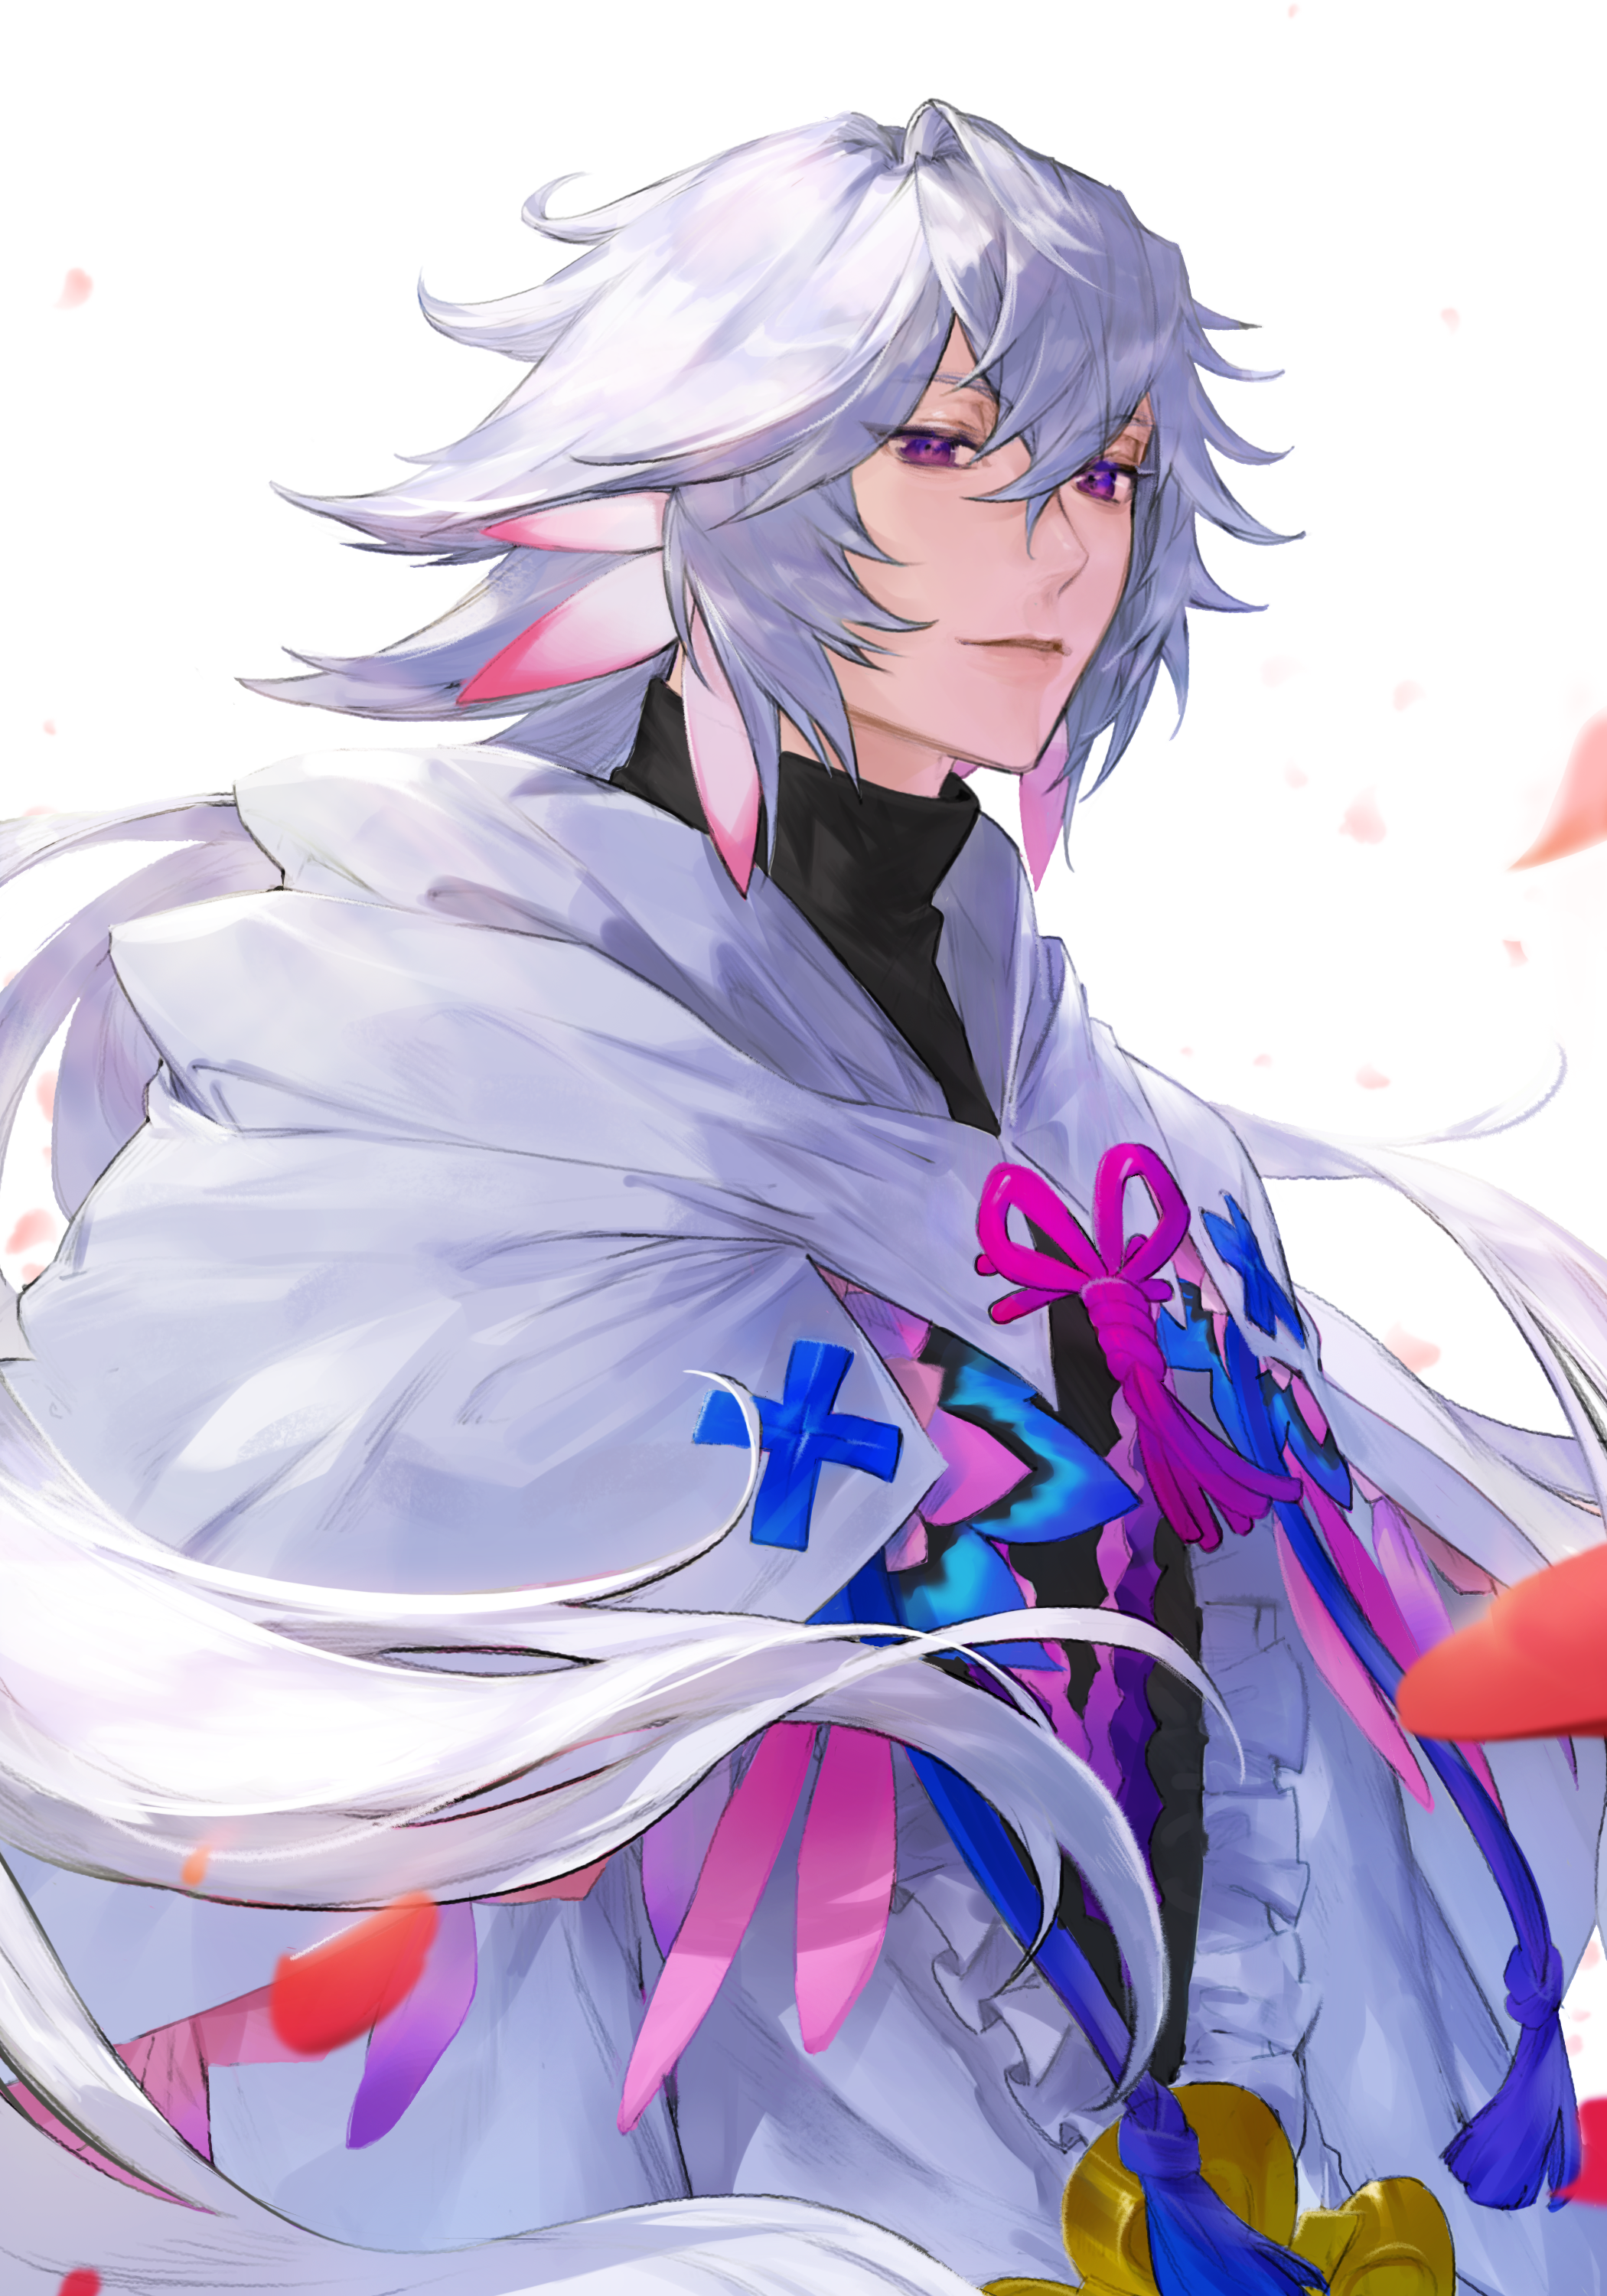 Merlin Fate Grand Order Anime Life Fate Characters Merlin